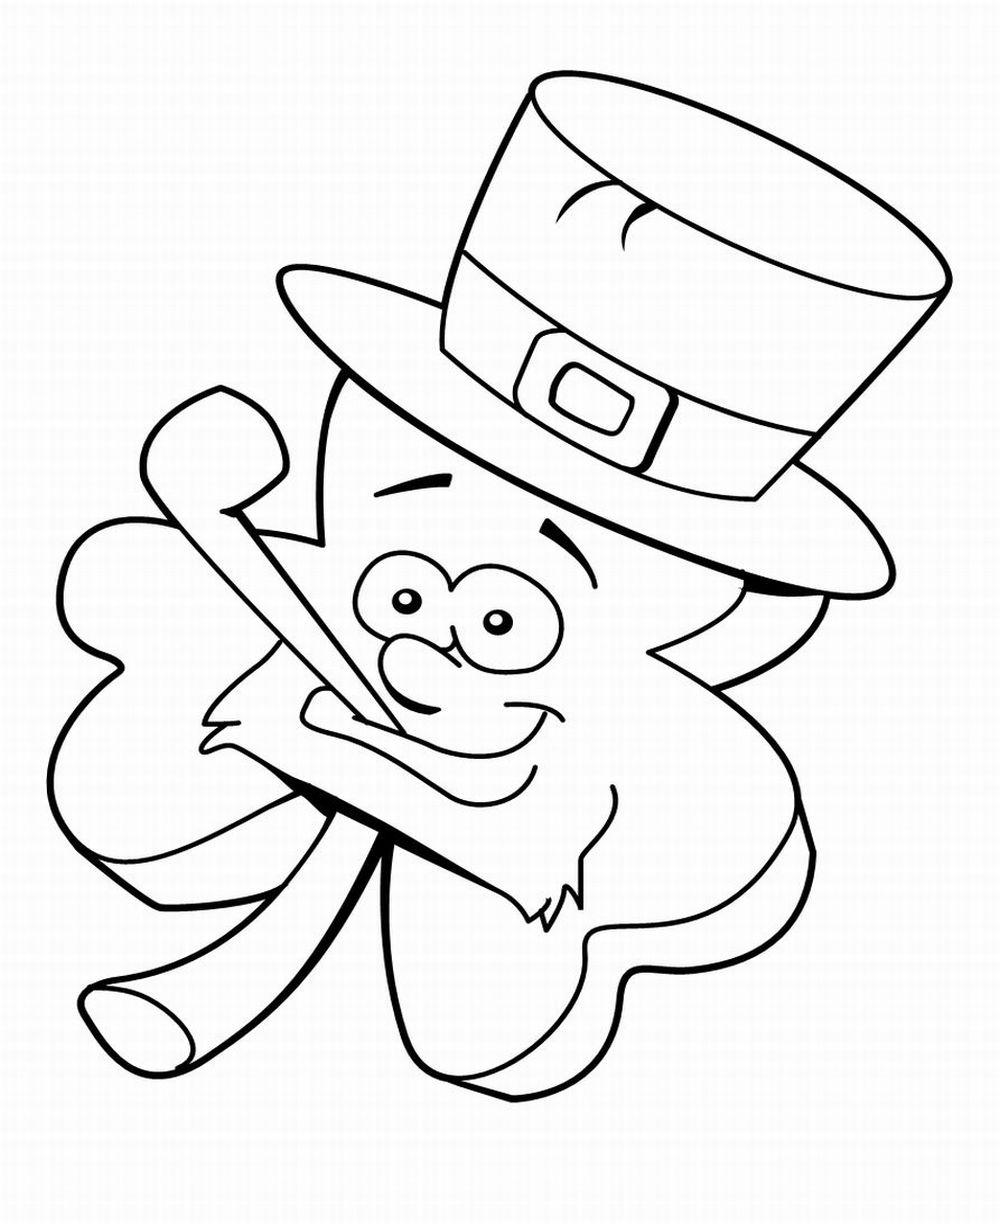 Leprechaun coloring pages to print for Free st patrick s day printable coloring pages